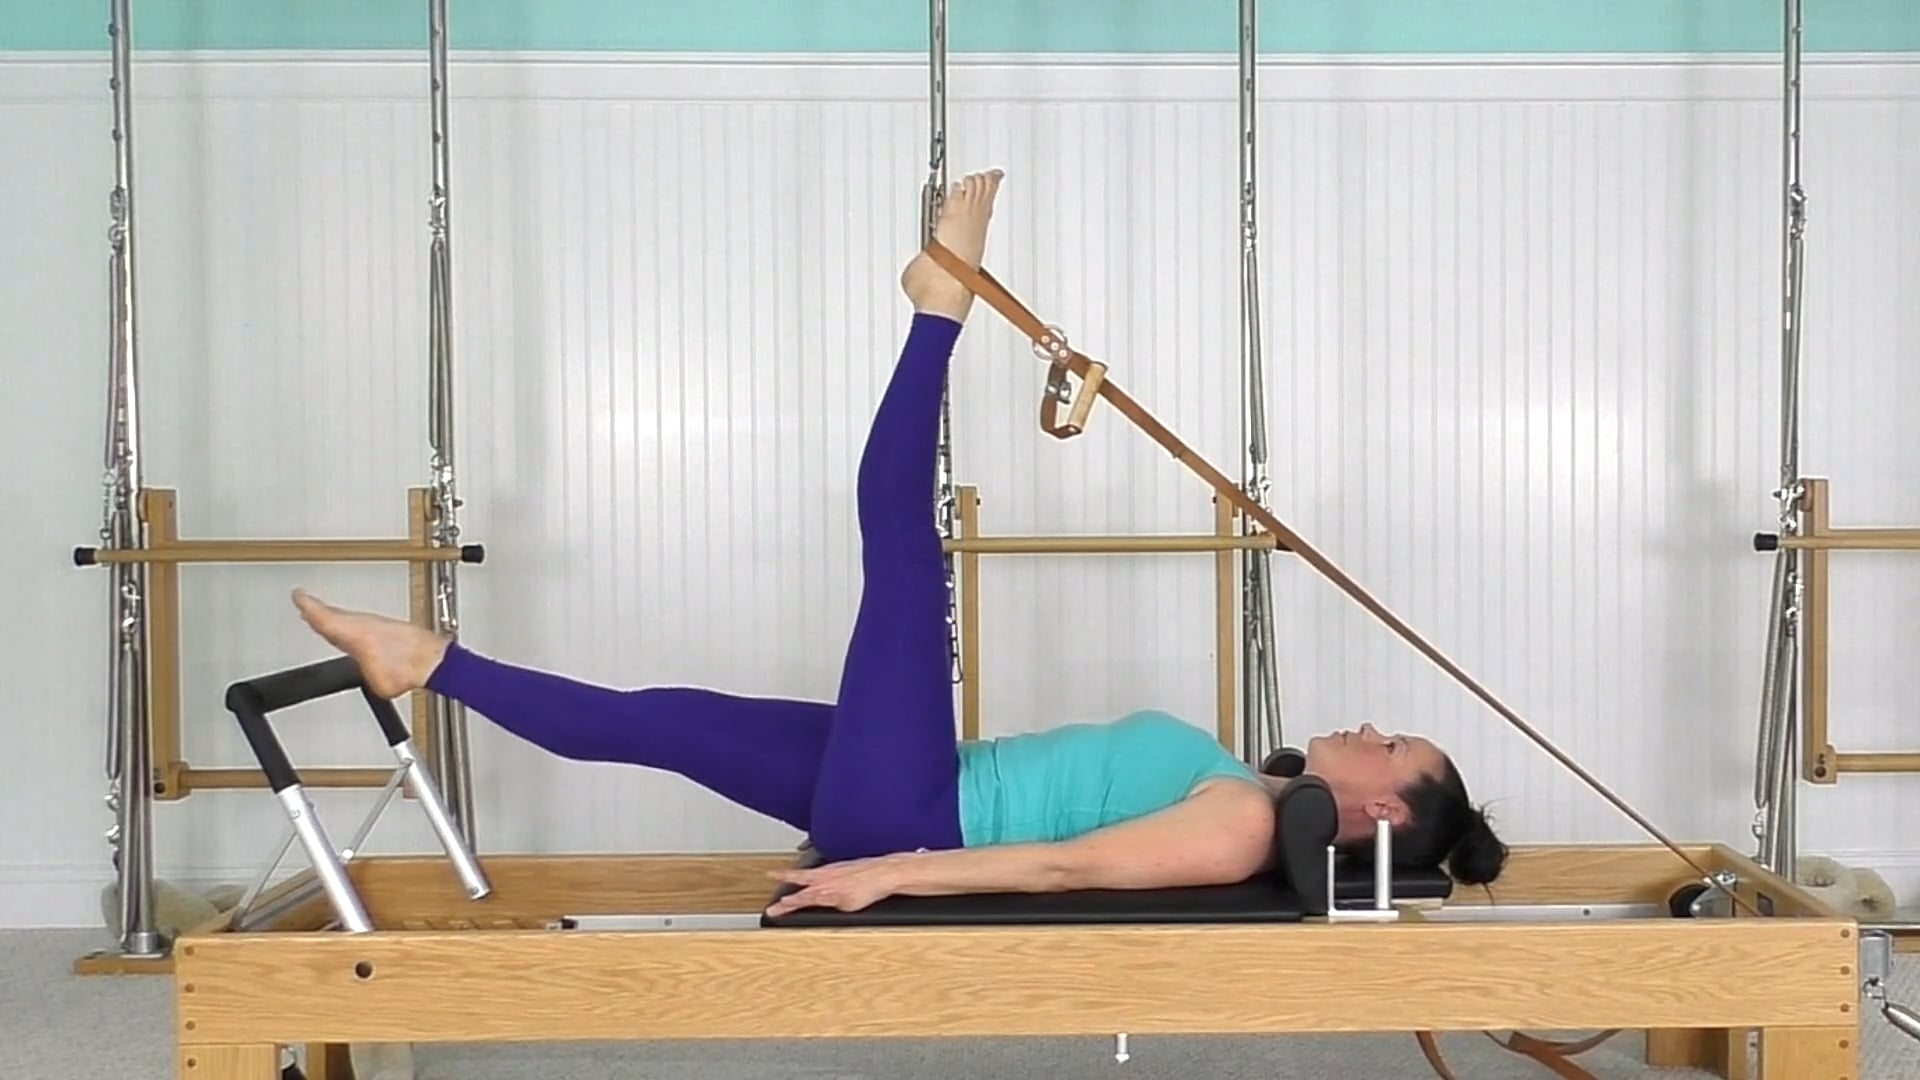 Reformer Workout For Symmetry